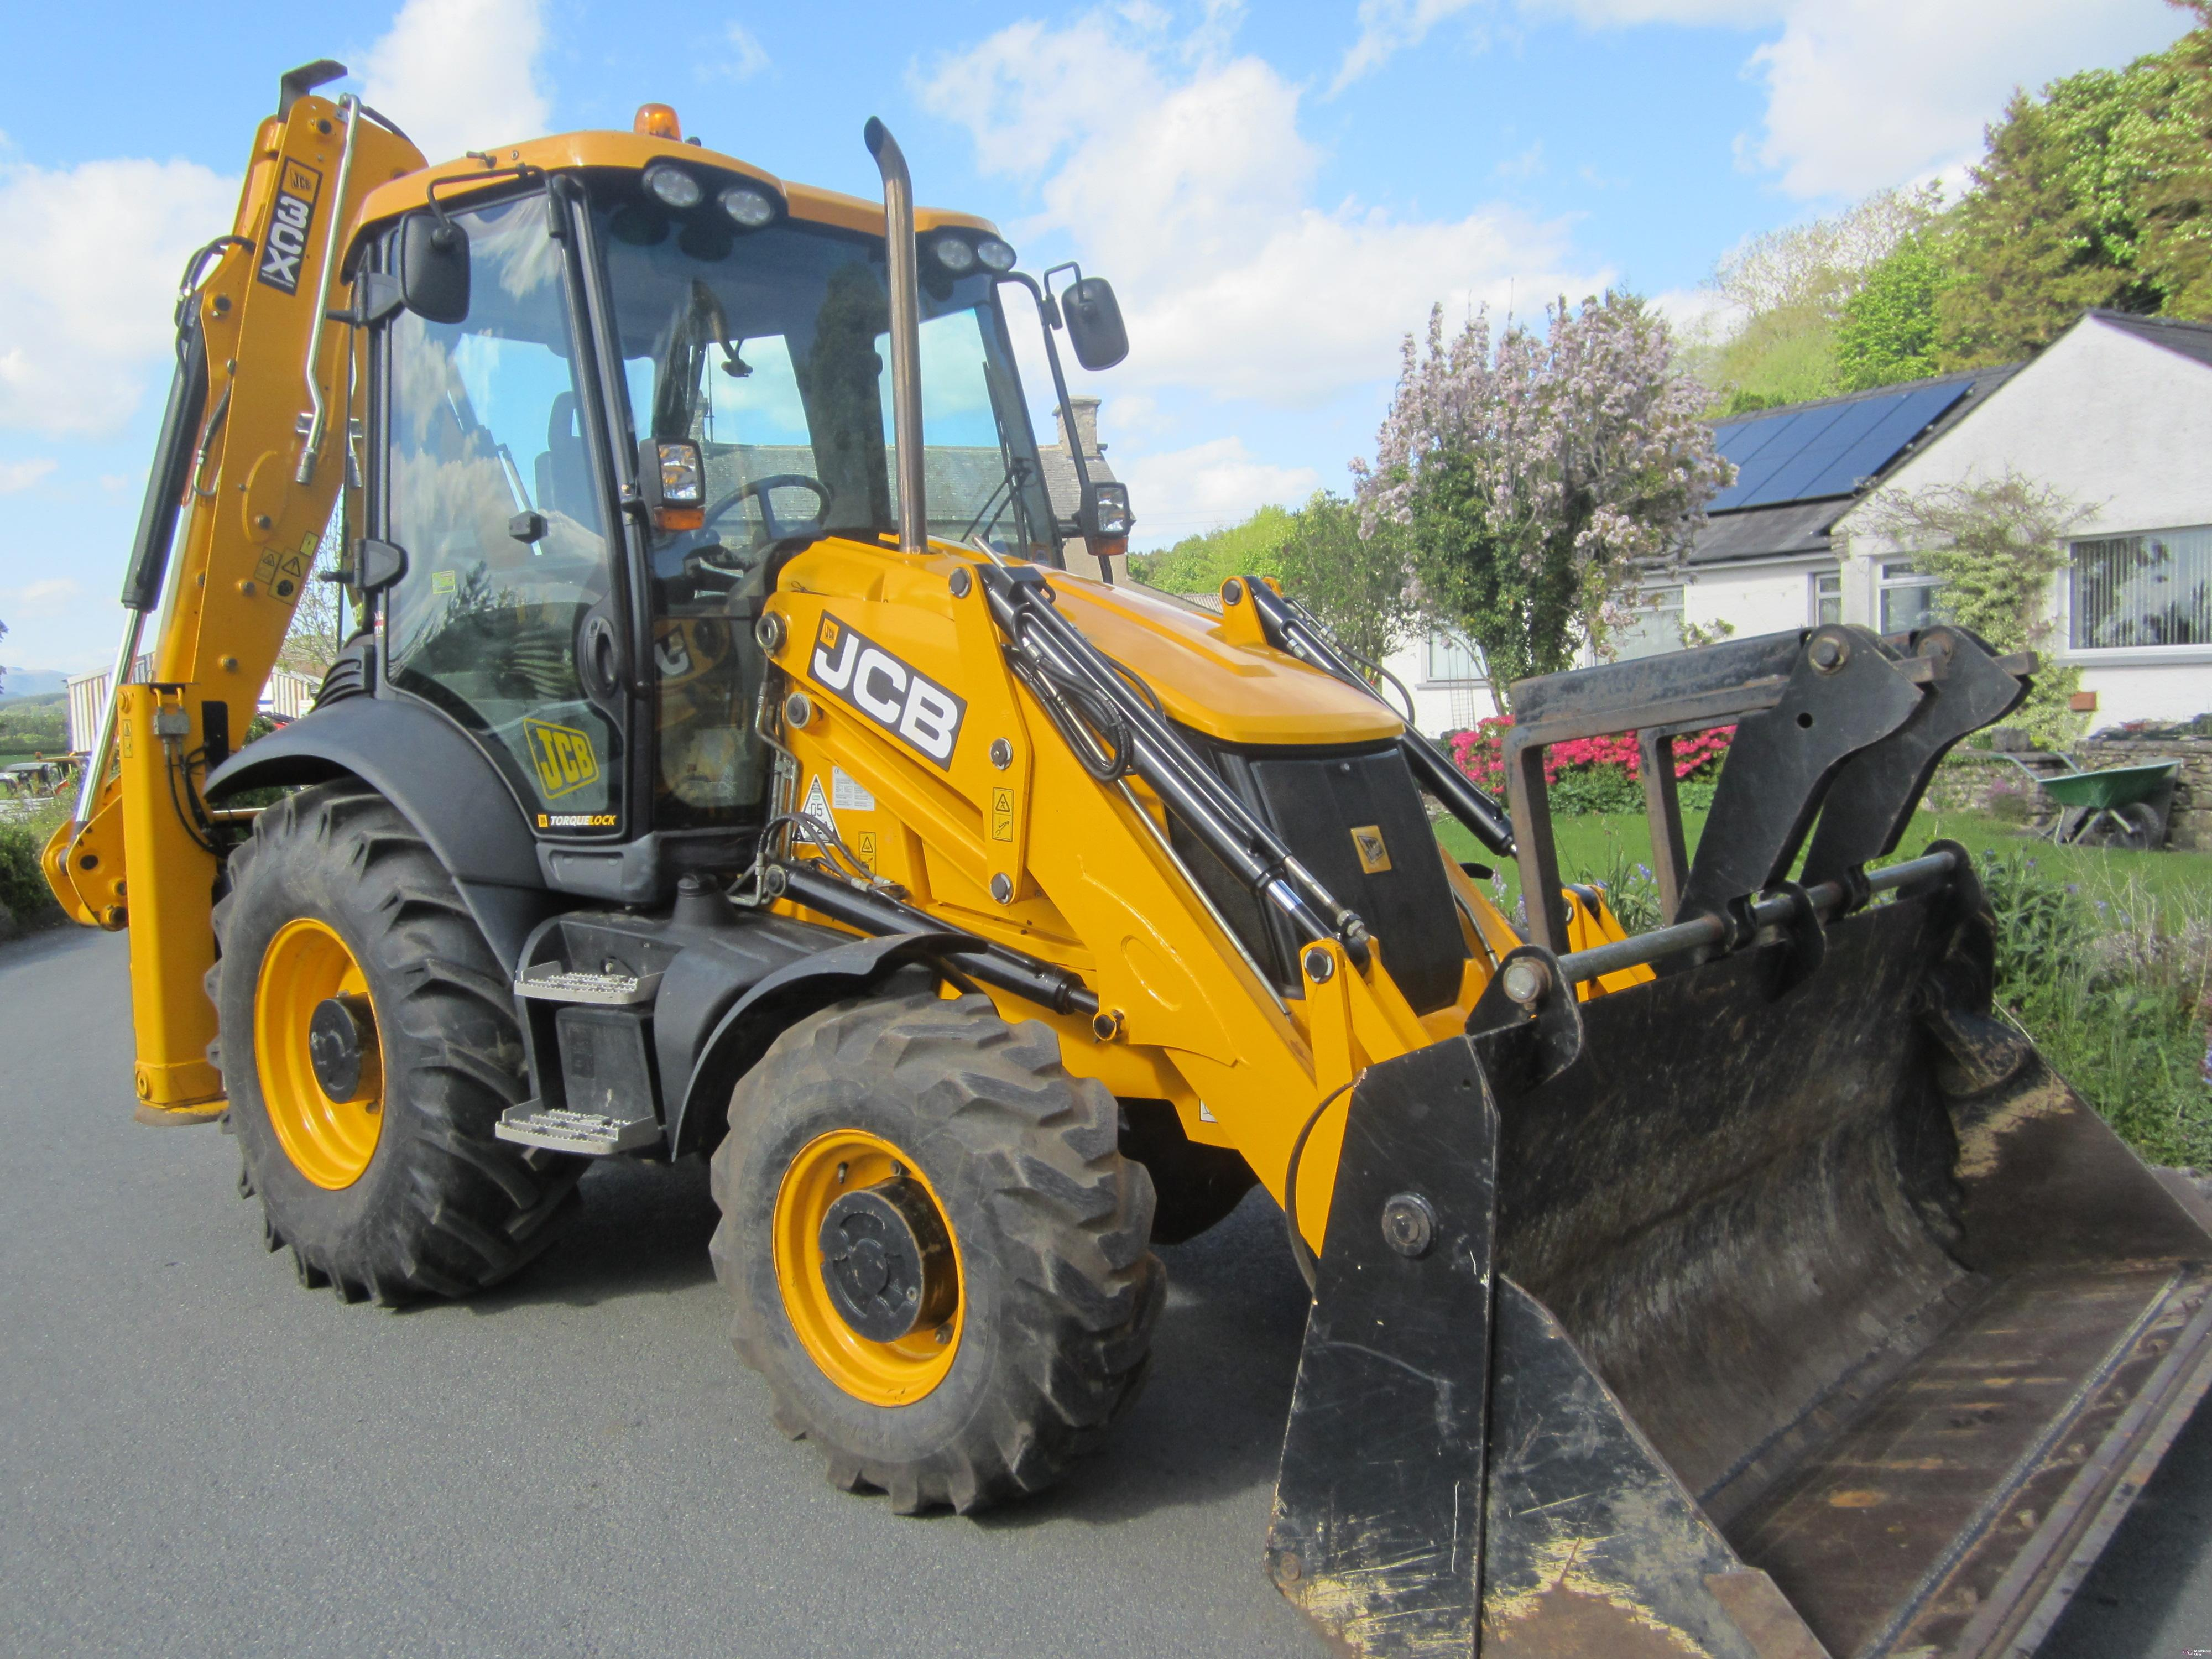 Jcb 3cx Eco Loader For Sale In Slovenia  Click To See More Details